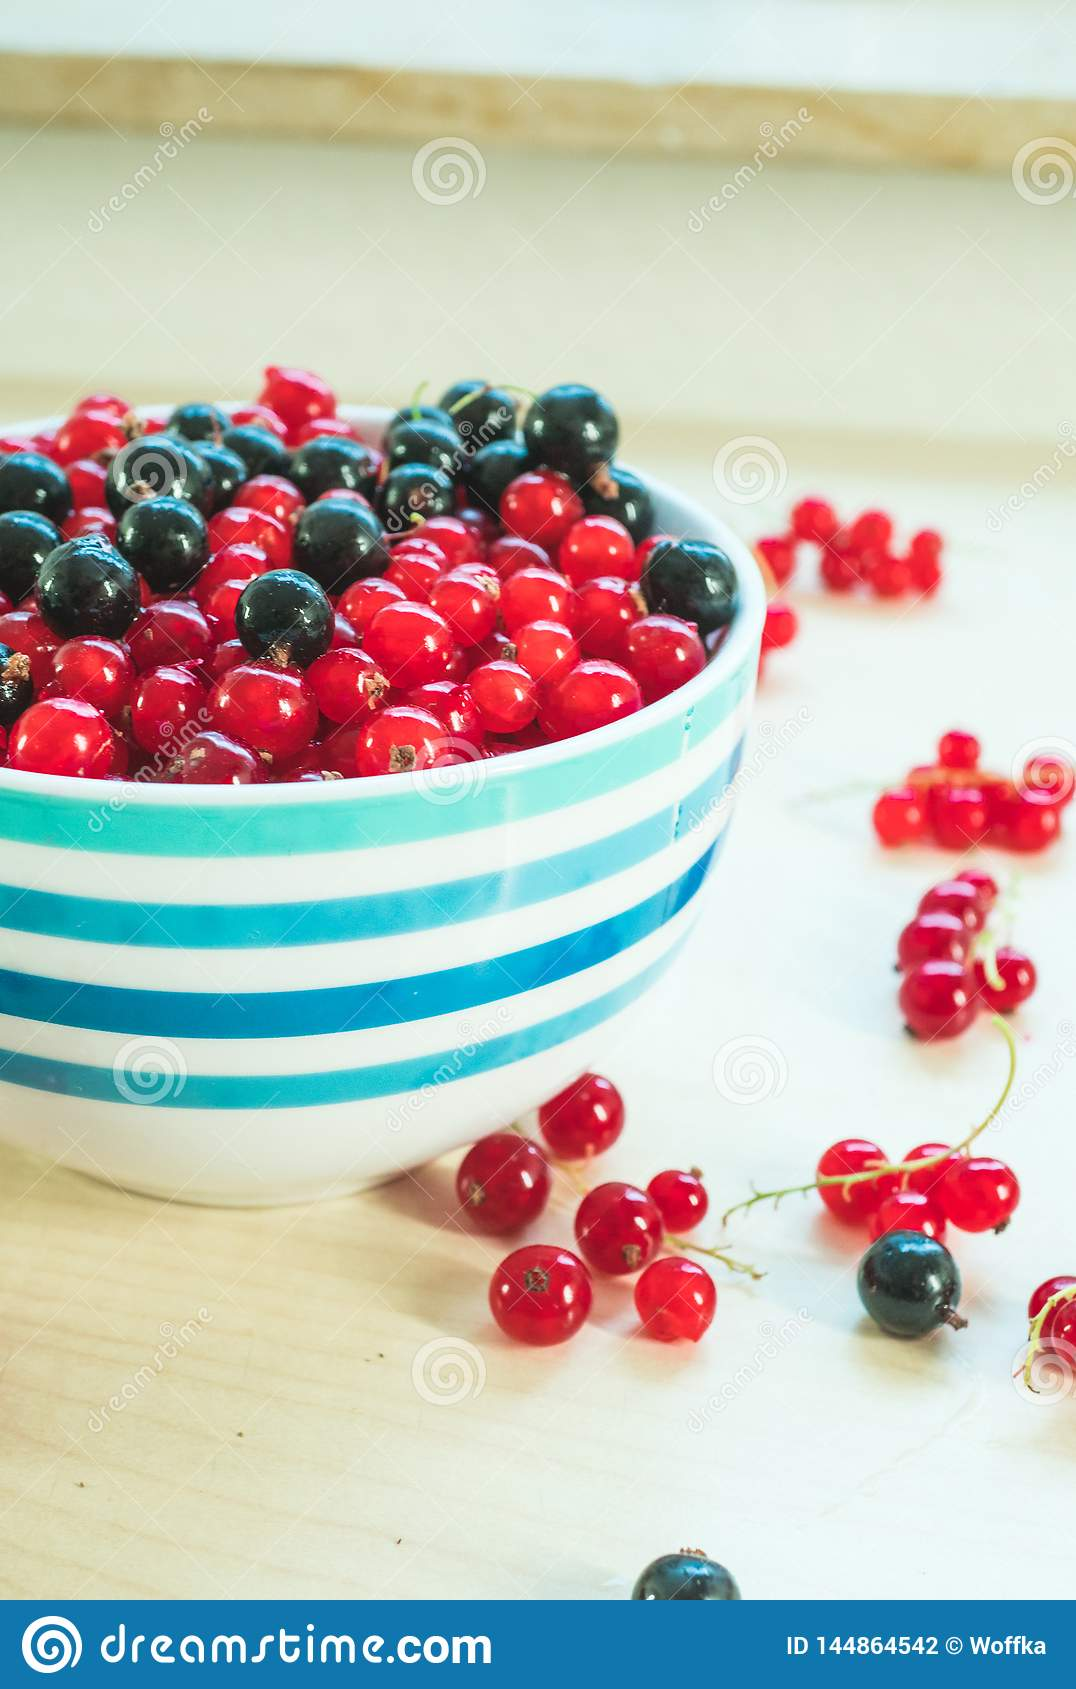 Close up shot of the table with berries